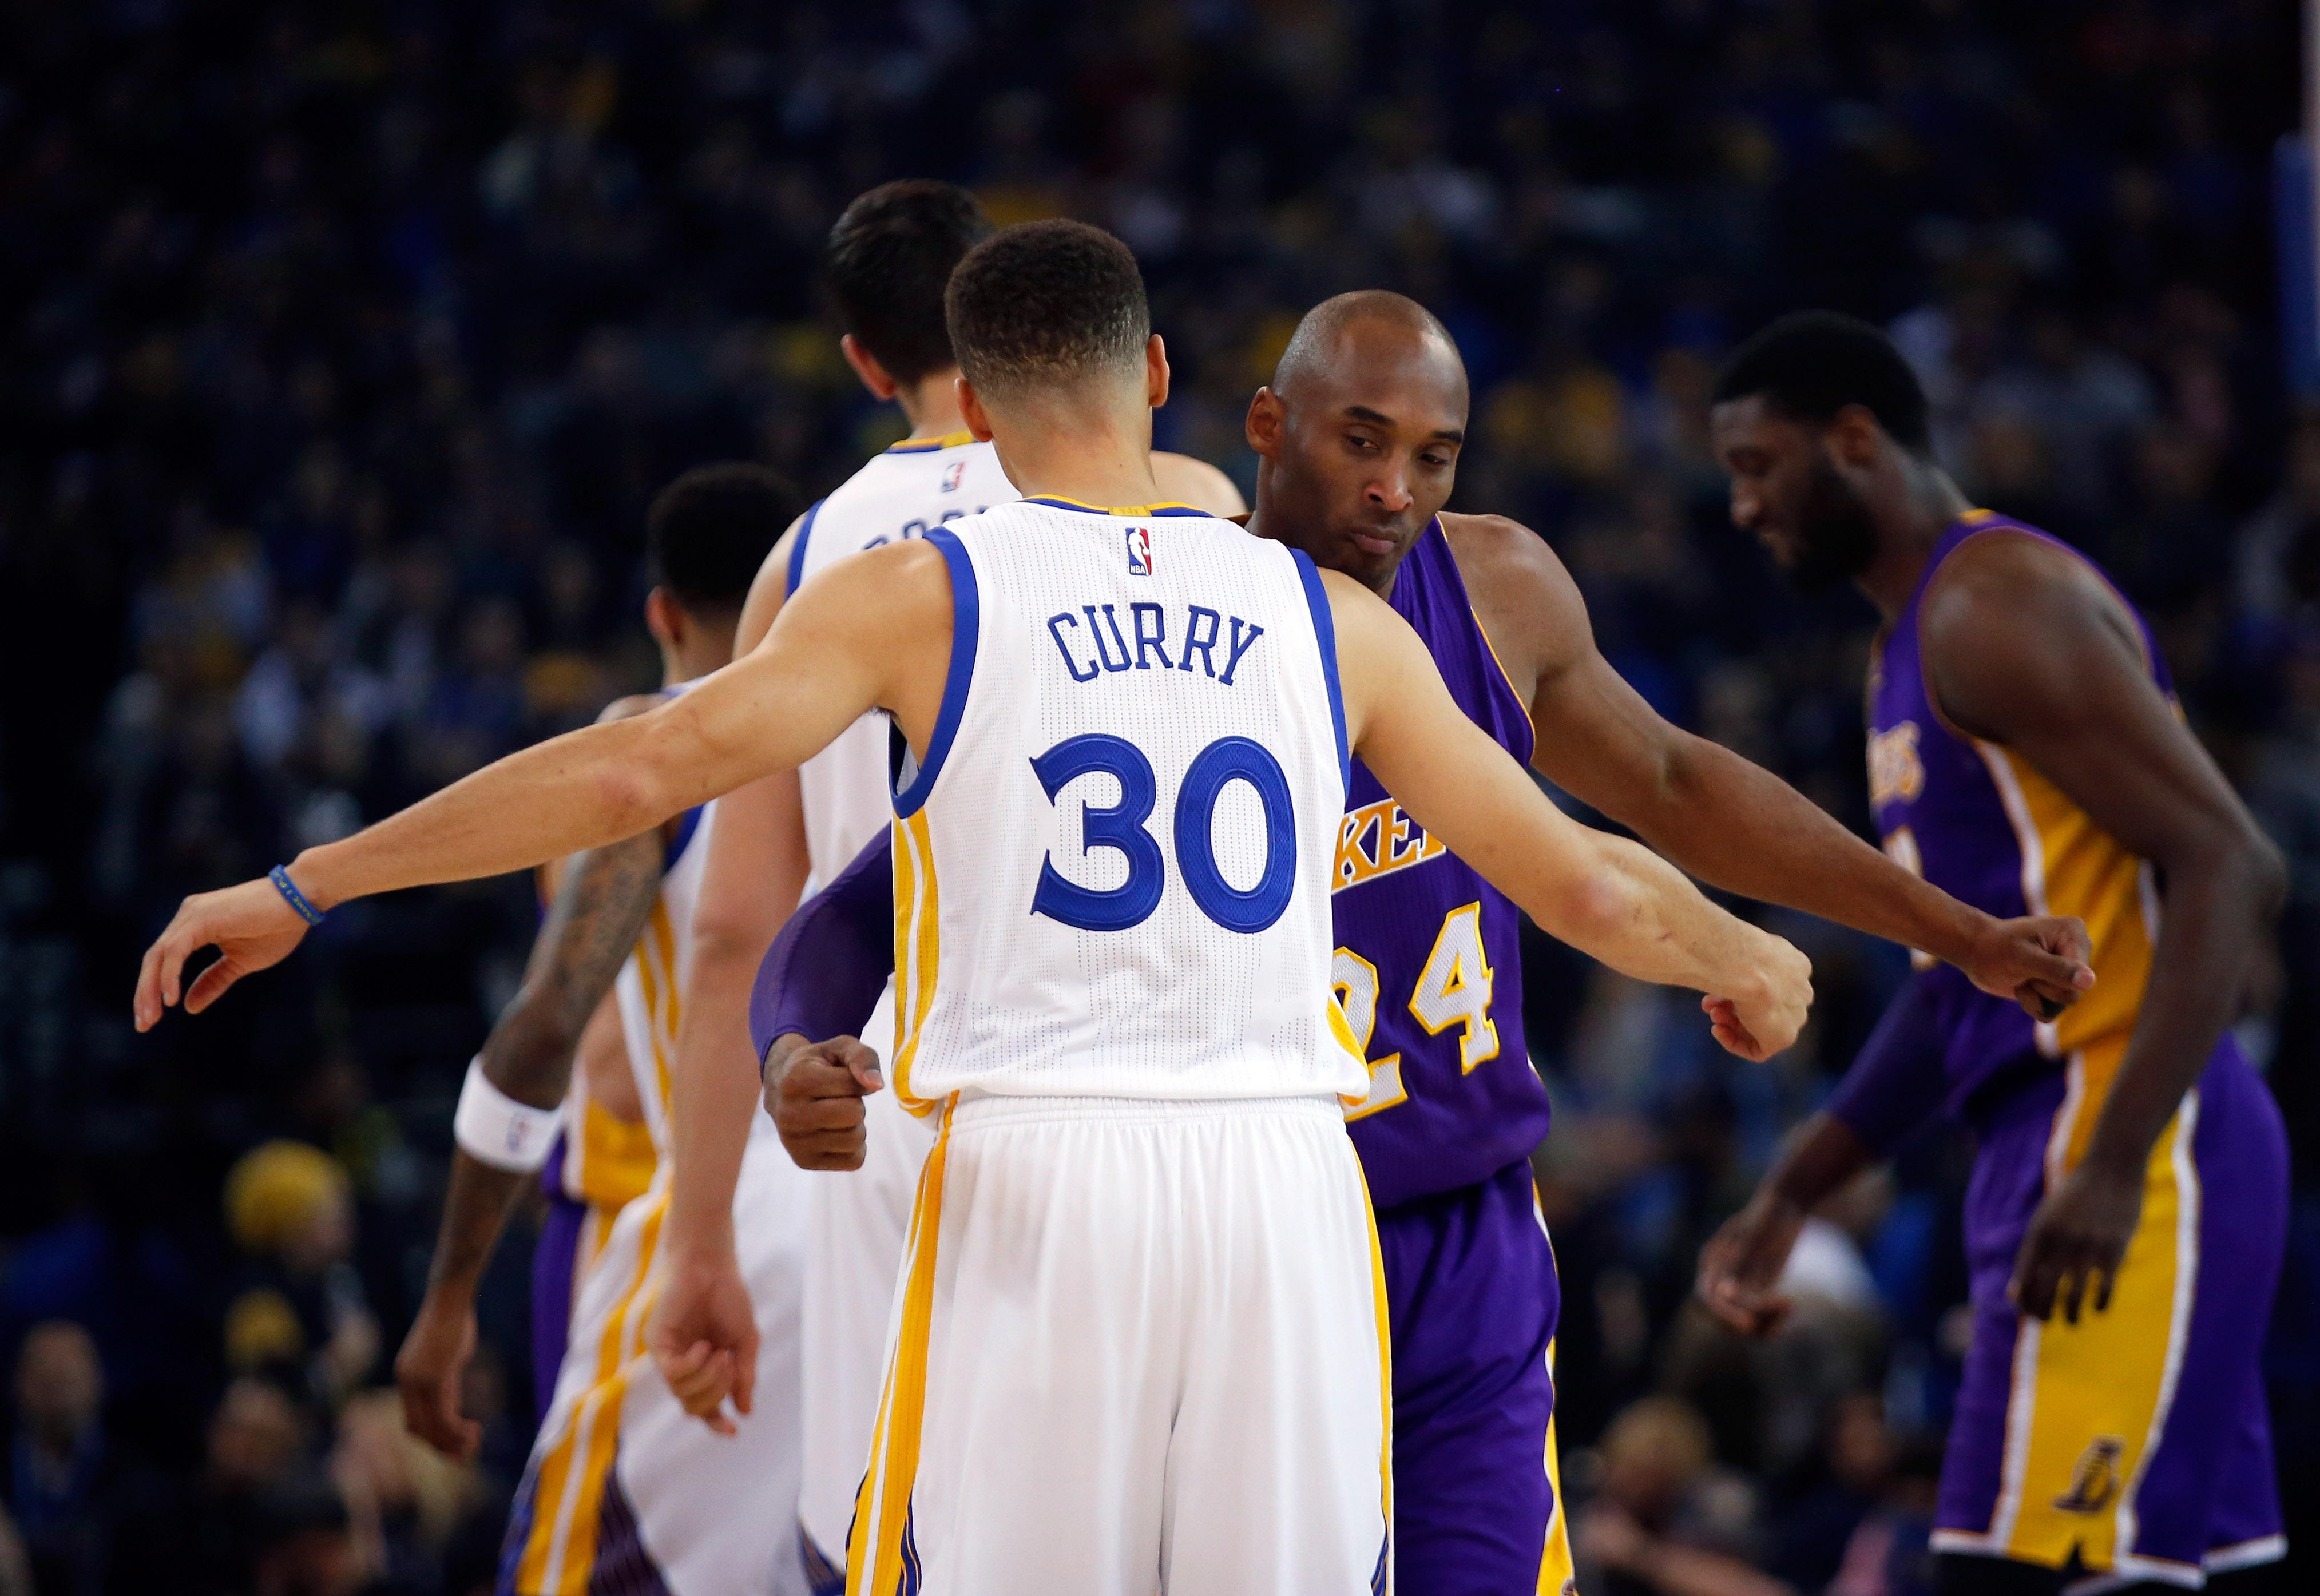 OAKLAND, CA - JANUARY 14:  Kobe Bryant #24 of the Los Angeles Lakers hugs Stephen Curry #30 of the Golden State Warriors before their game at ORACLE Arena on January 14, 2016 in Oakland, California. (Photo by Ezra Shaw/Getty Images)